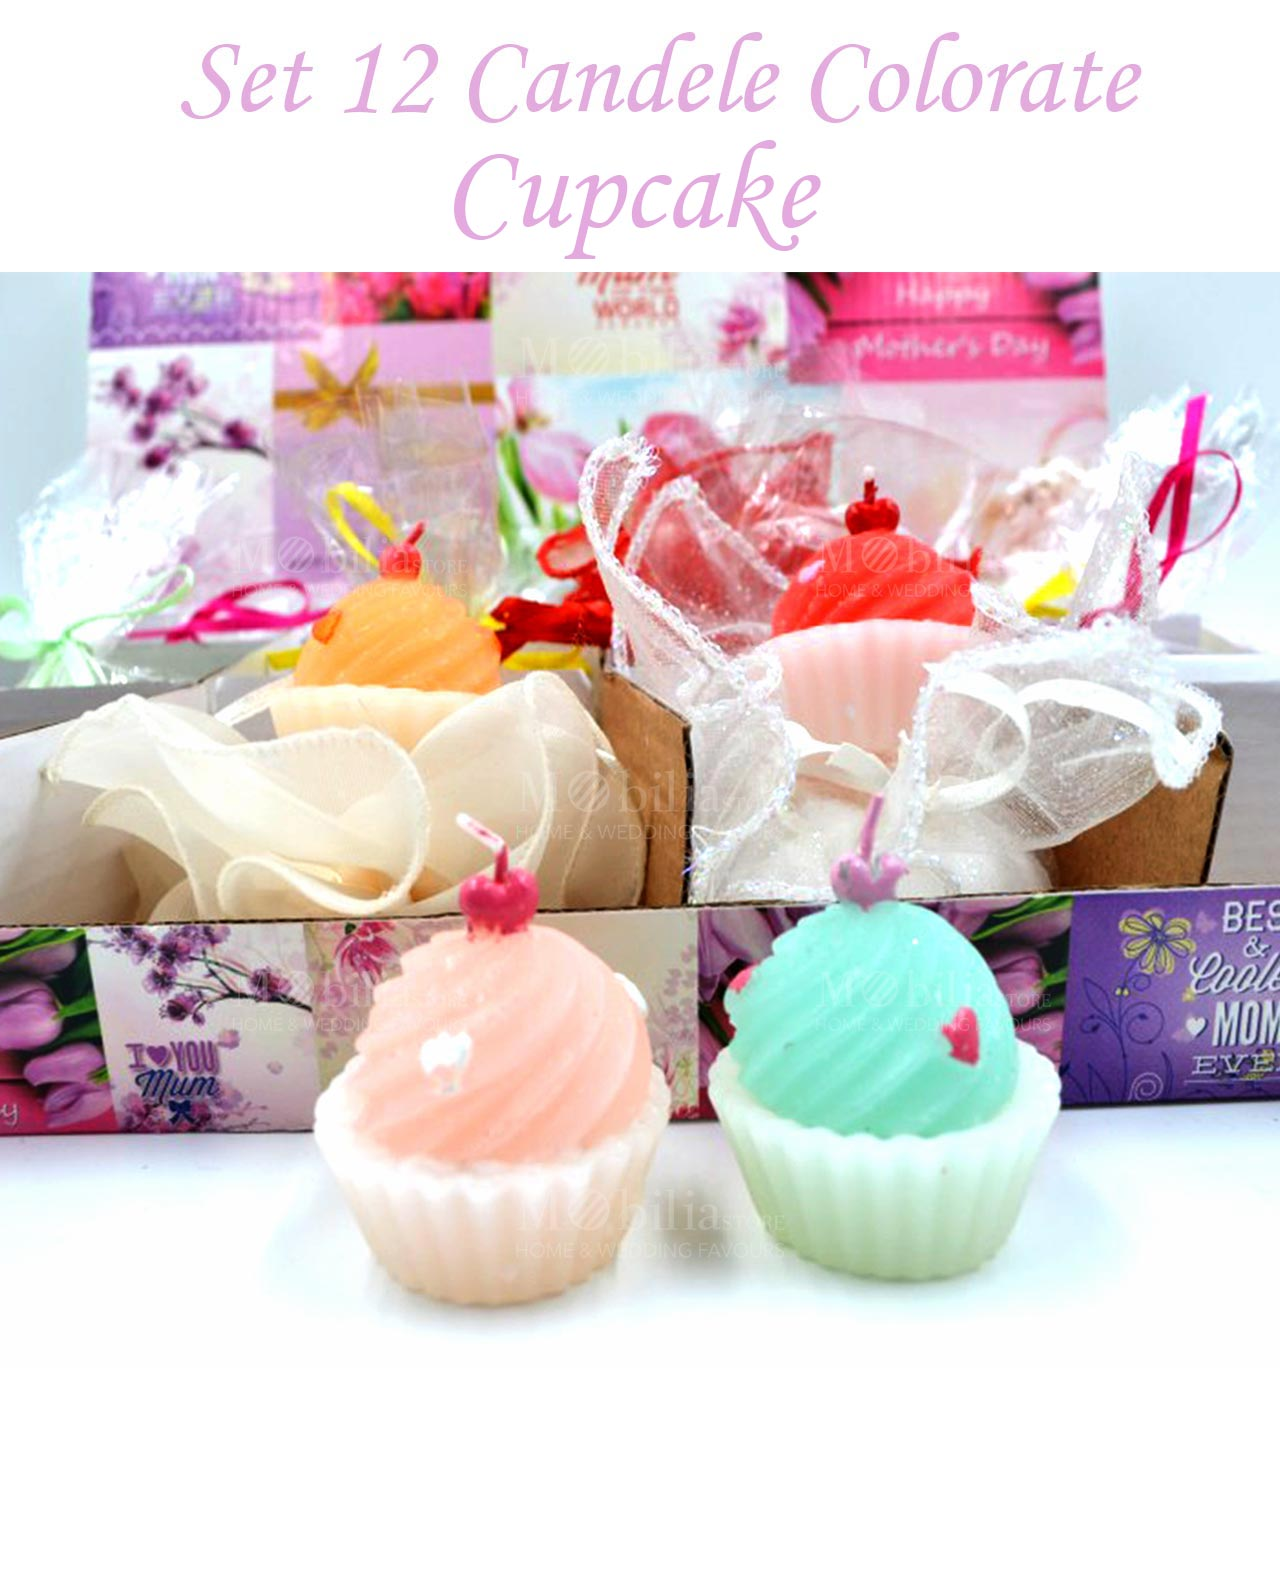 Candele colorate a forma di cupcake set 12 pz varie misure for Candele colorate